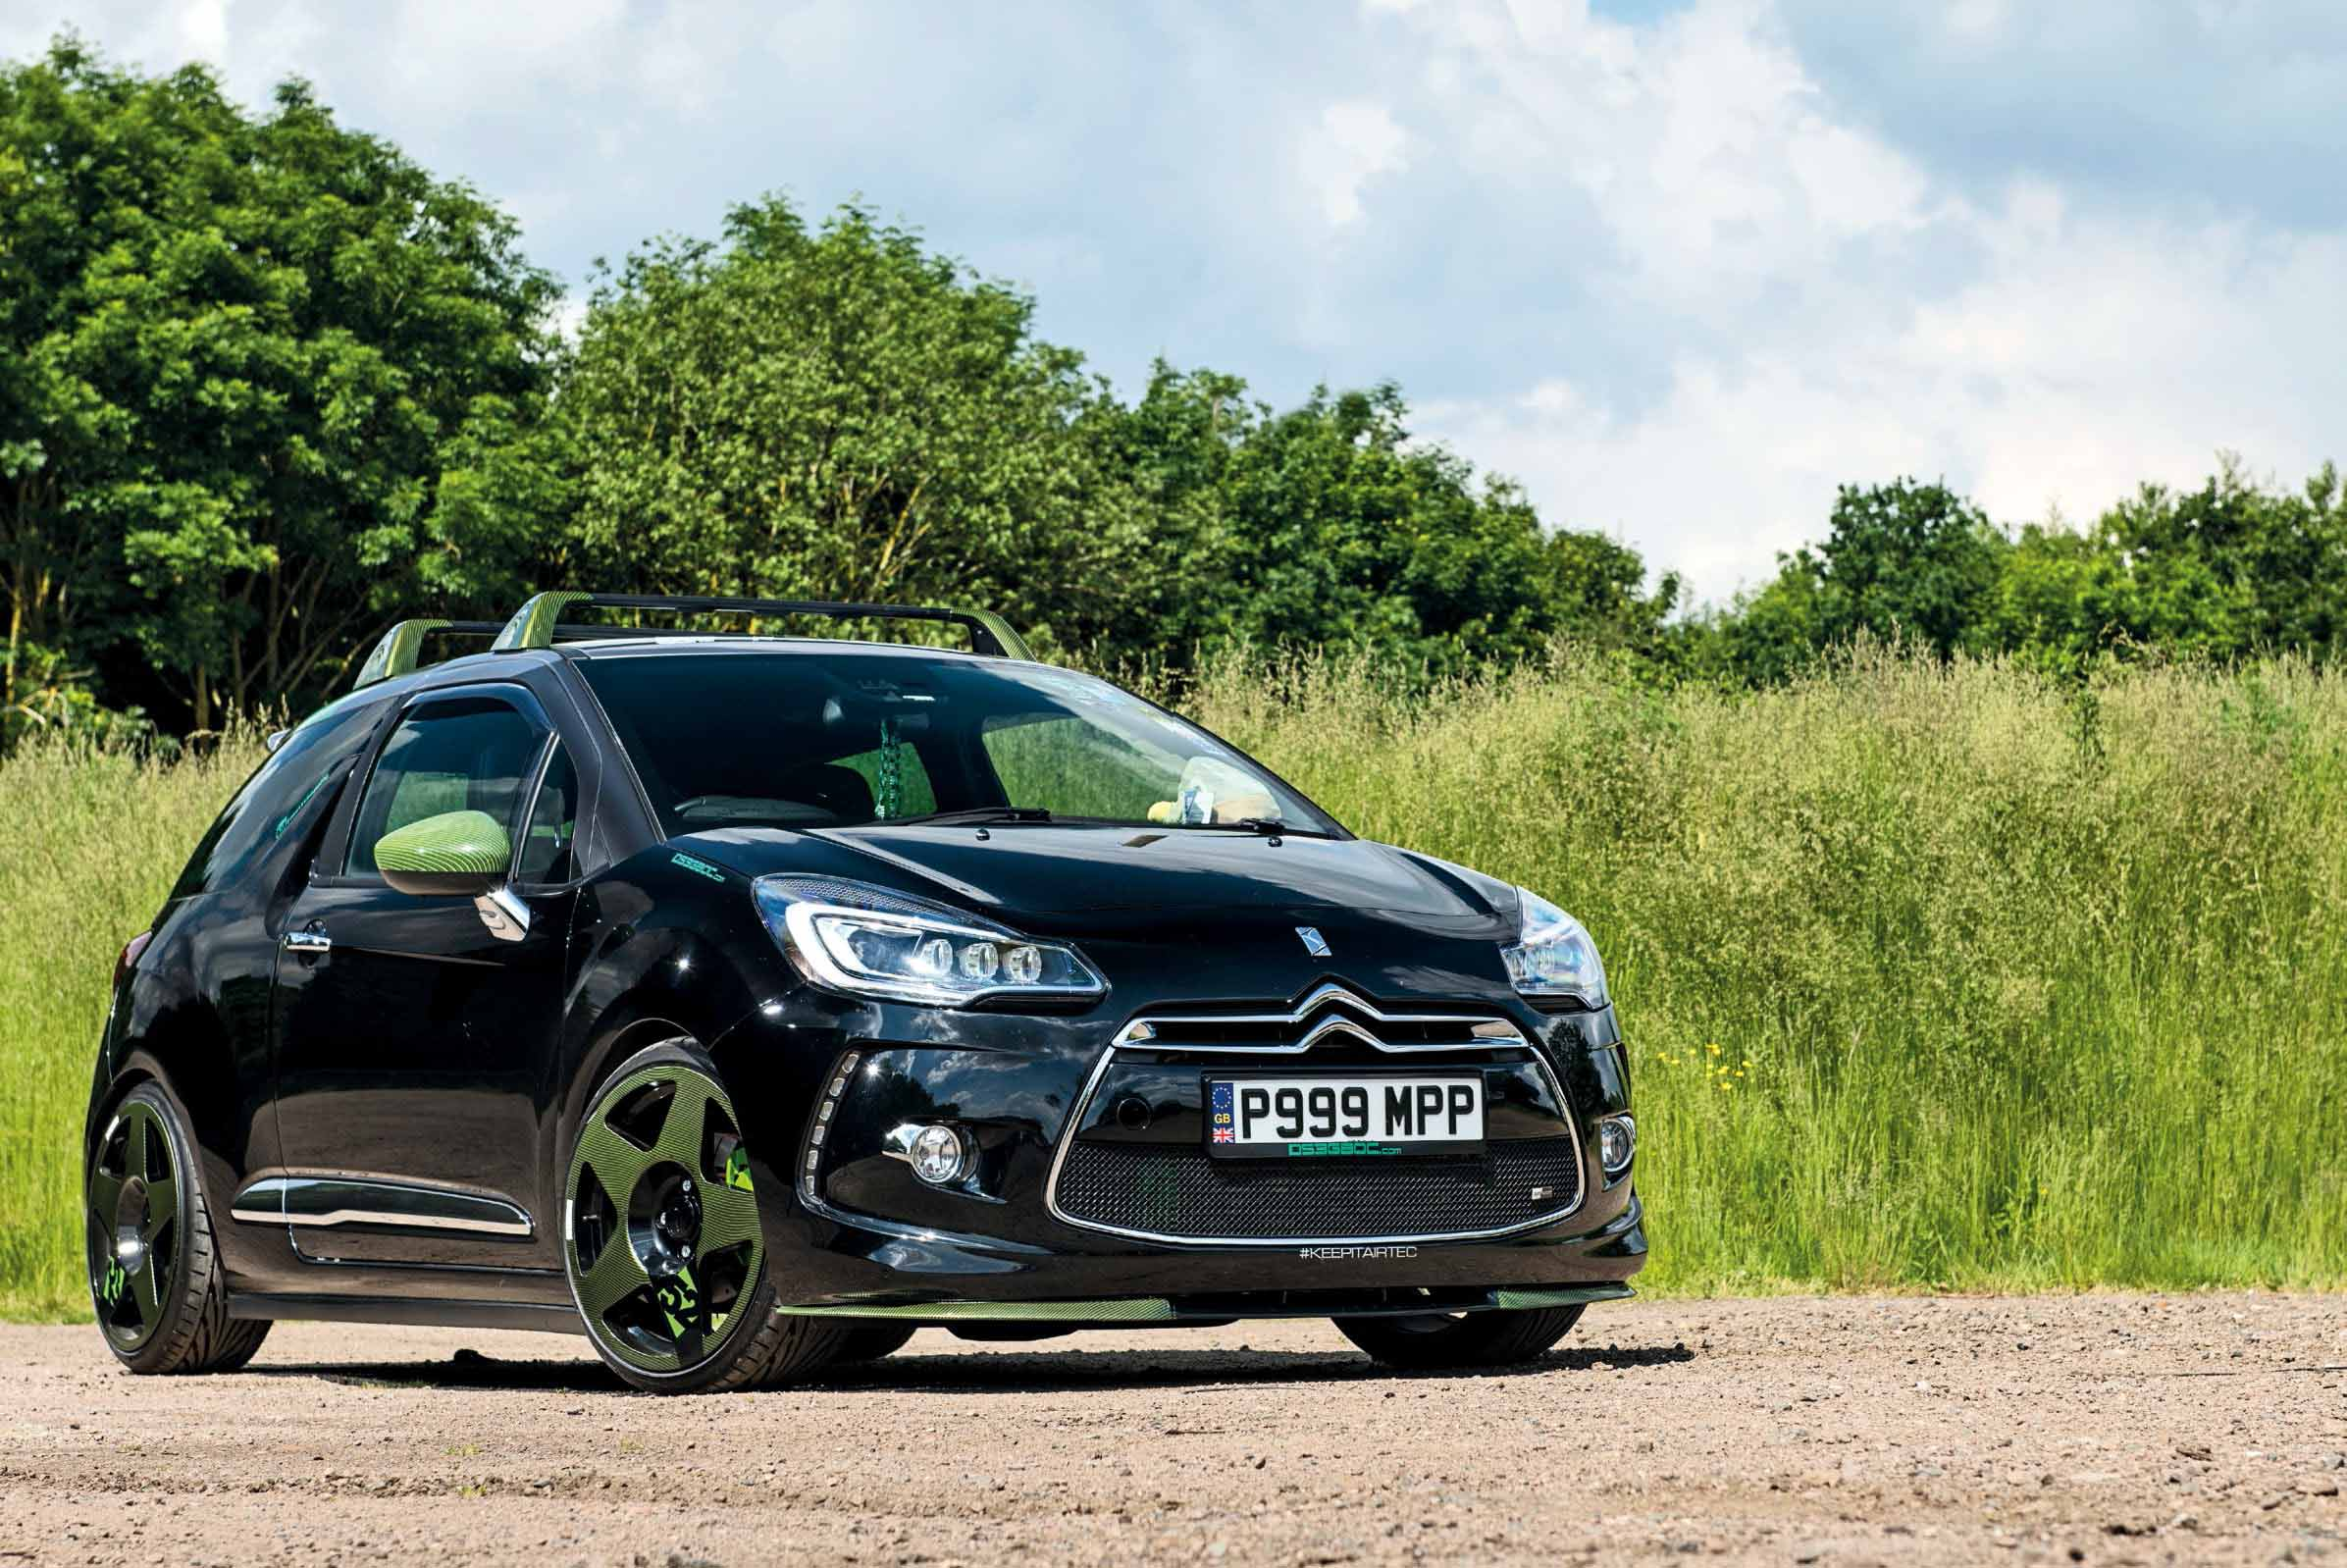 stunning 210 bhp citroen ds3 sp tuning drive my blogs drive. Black Bedroom Furniture Sets. Home Design Ideas